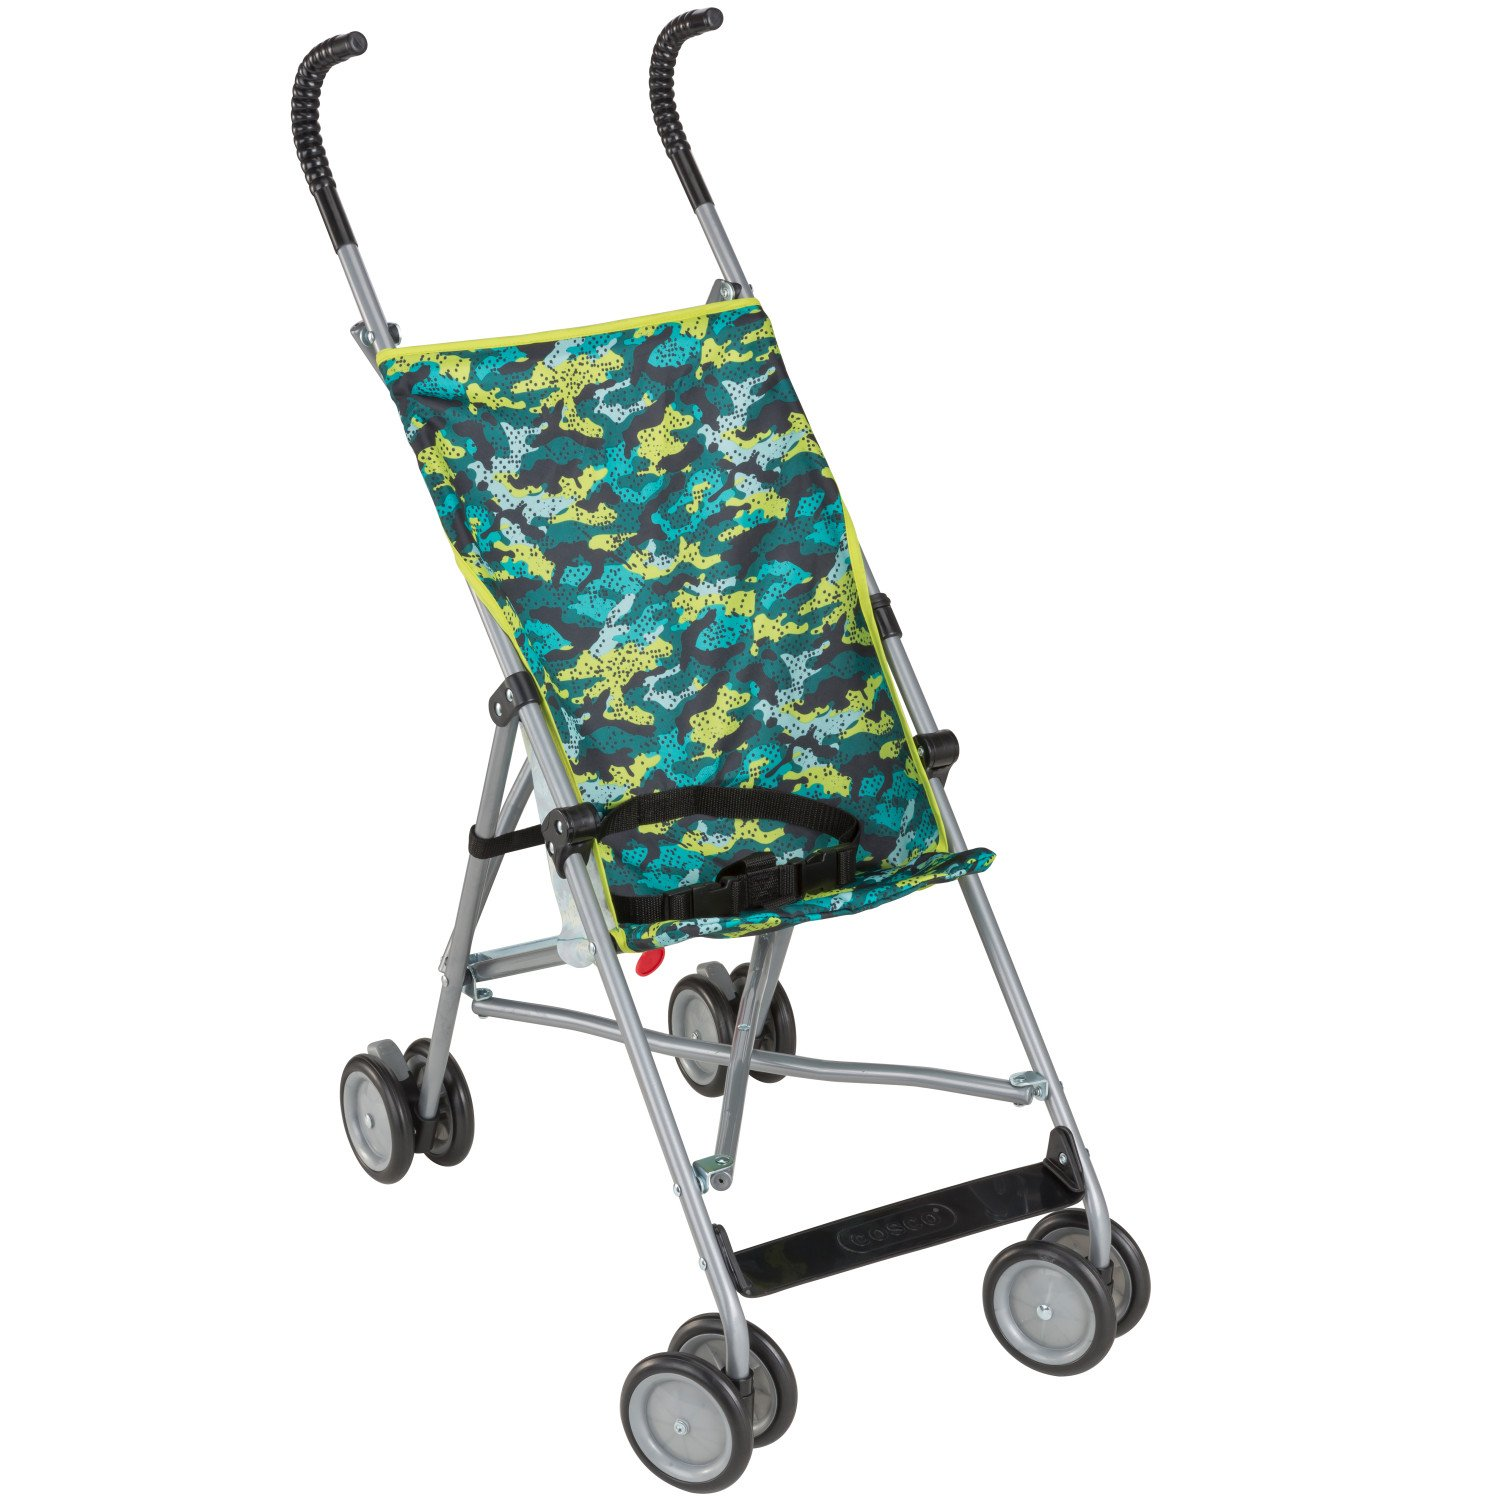 Cosco Umbrella Stroller, Pirate Life for Me Dorel Juvenile Group